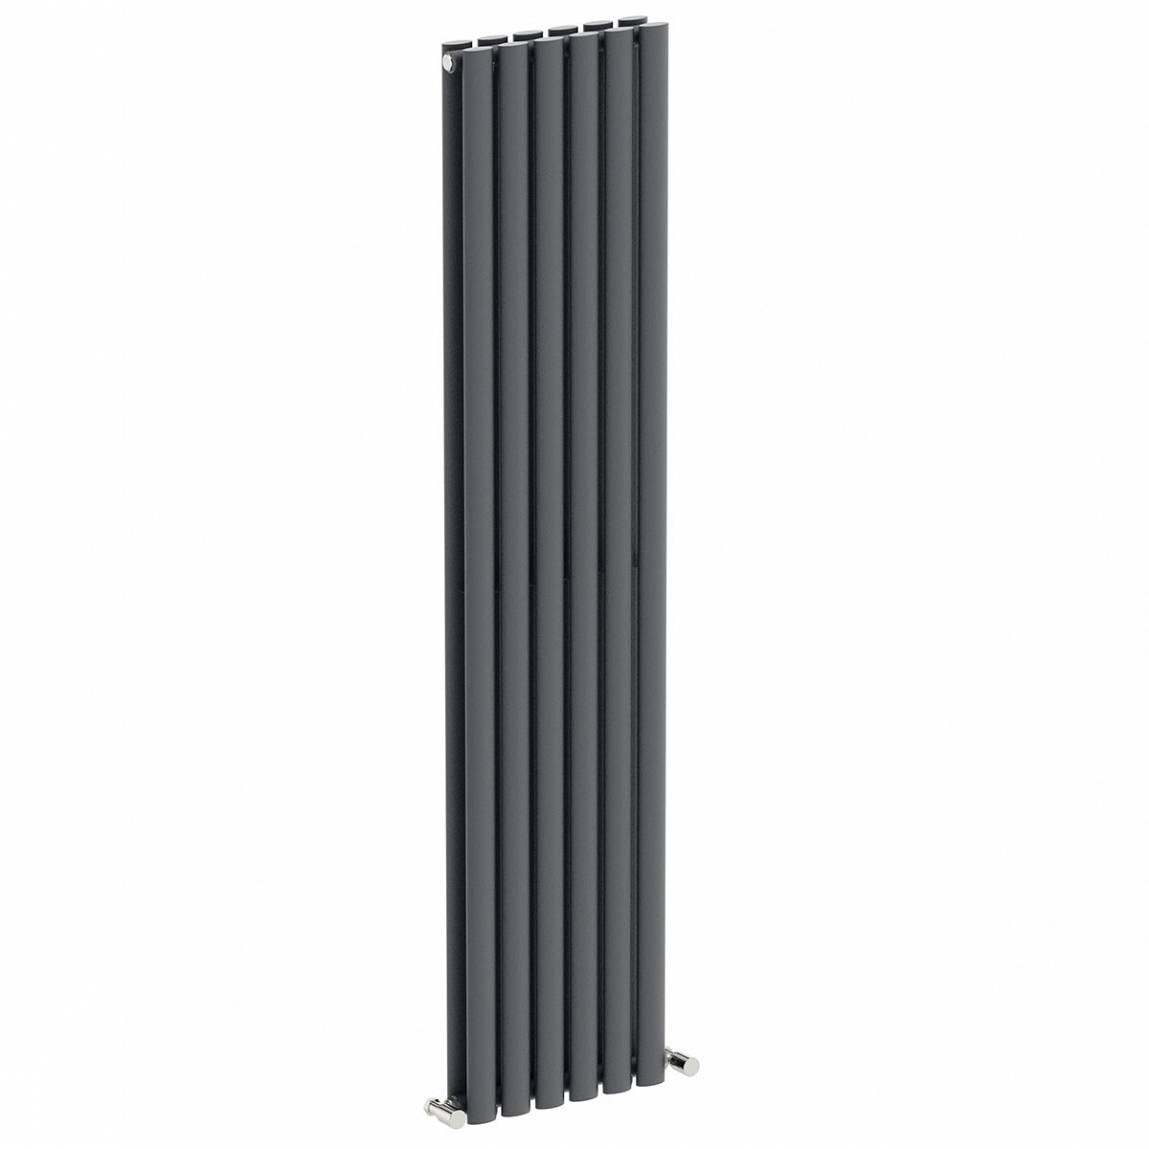 Mode Tate double radiator 1600 x 360 offer pack